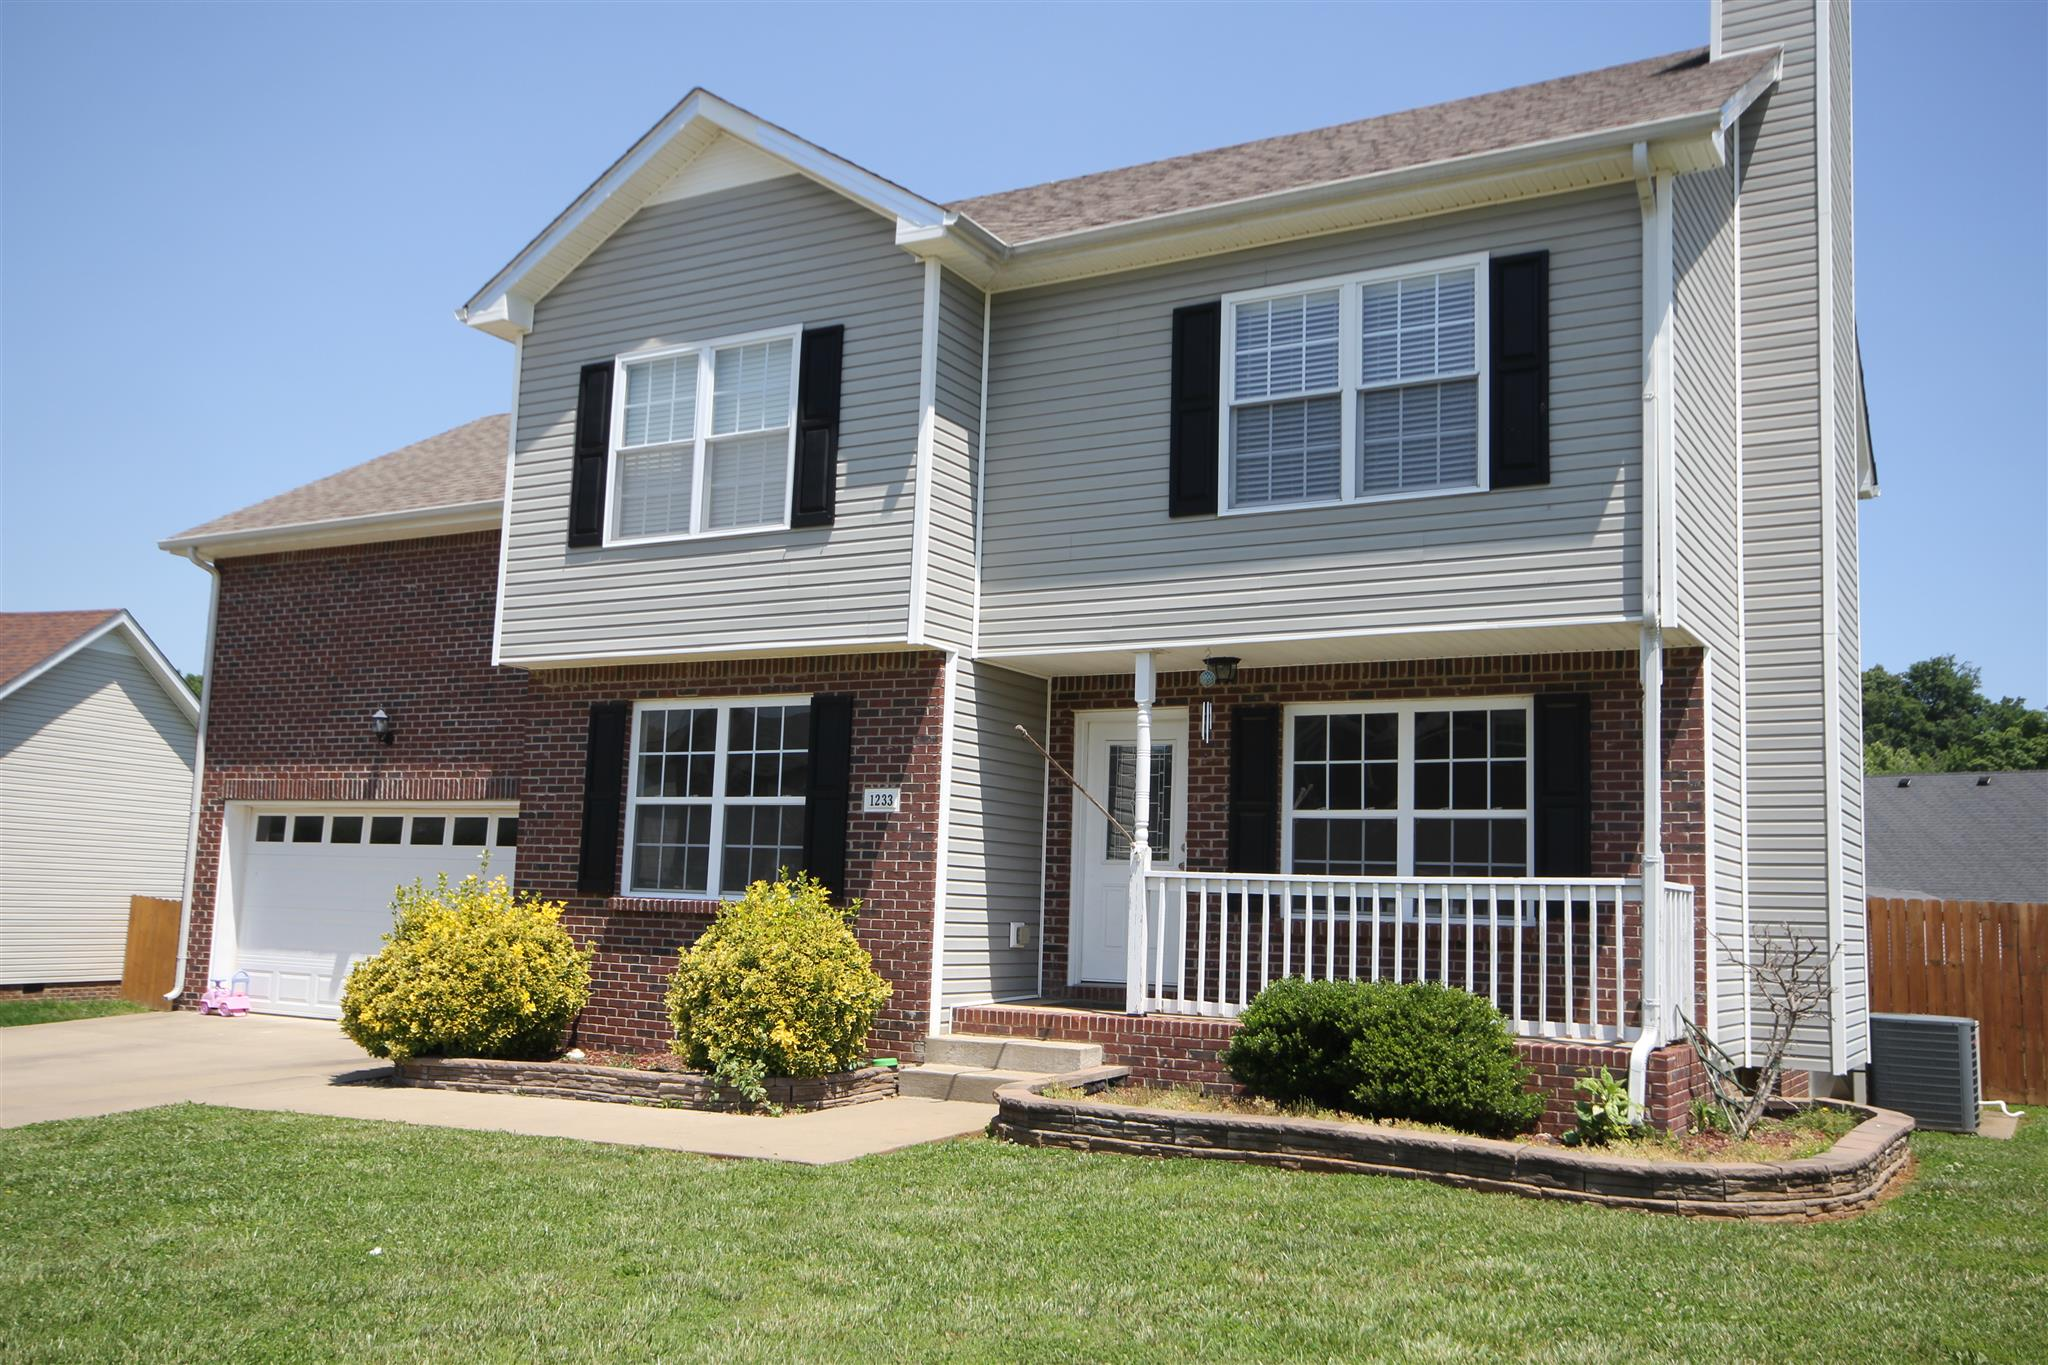 1233 Channelview Dr, Clarksville, TN 37040